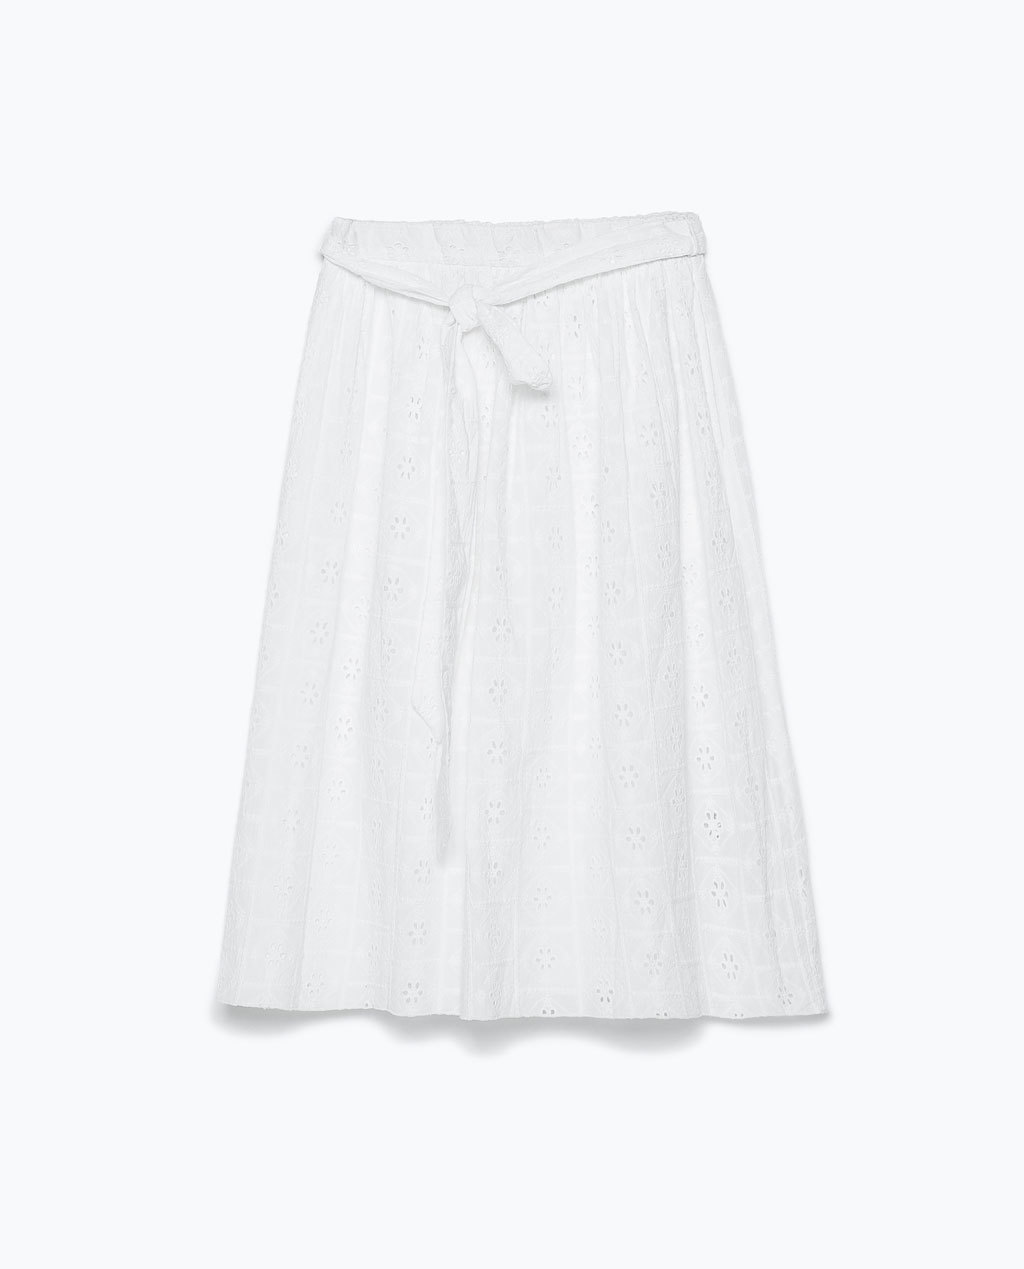 Midi Skirt - pattern: plain; style: full/prom skirt; fit: loose/voluminous; waist detail: belted waist/tie at waist/drawstring; waist: mid/regular rise; predominant colour: ivory/cream; occasions: casual, occasion, creative work; length: on the knee; fibres: cotton - 100%; texture group: cotton feel fabrics; season: s/s 2015; wardrobe: basic